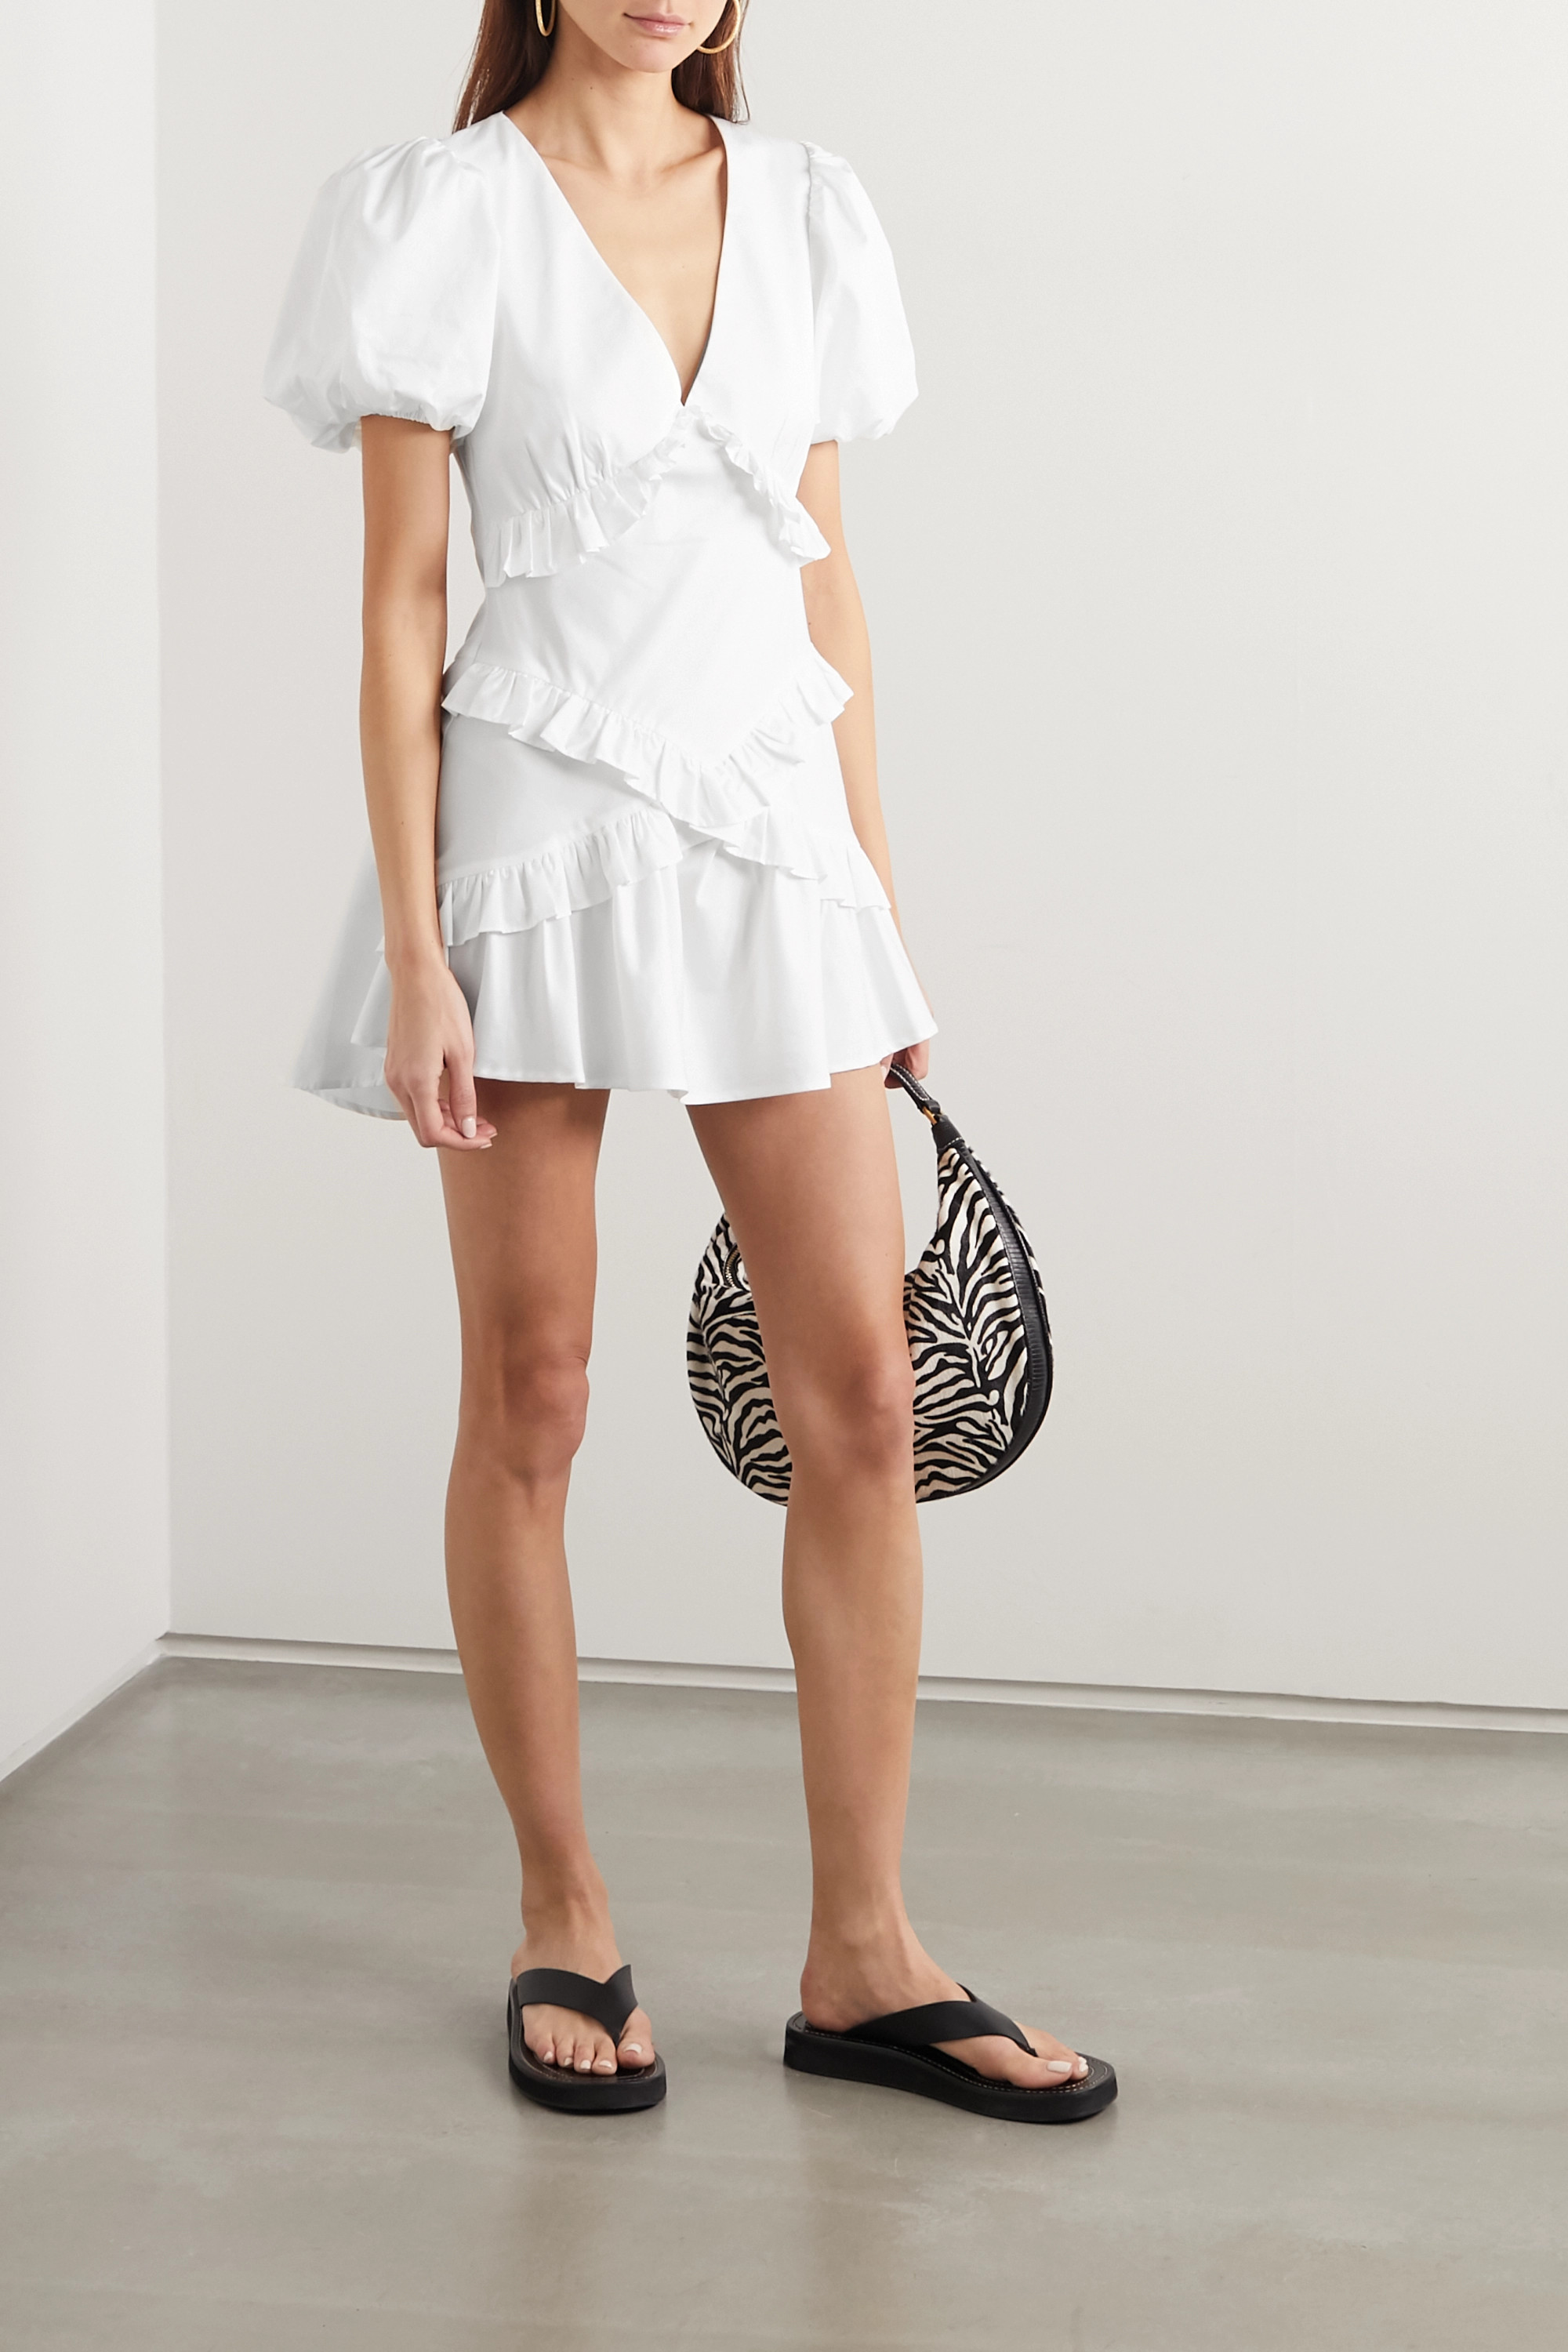 Maggie Marilyn The Jones 2.0 ruffled cotton-poplin mini dress